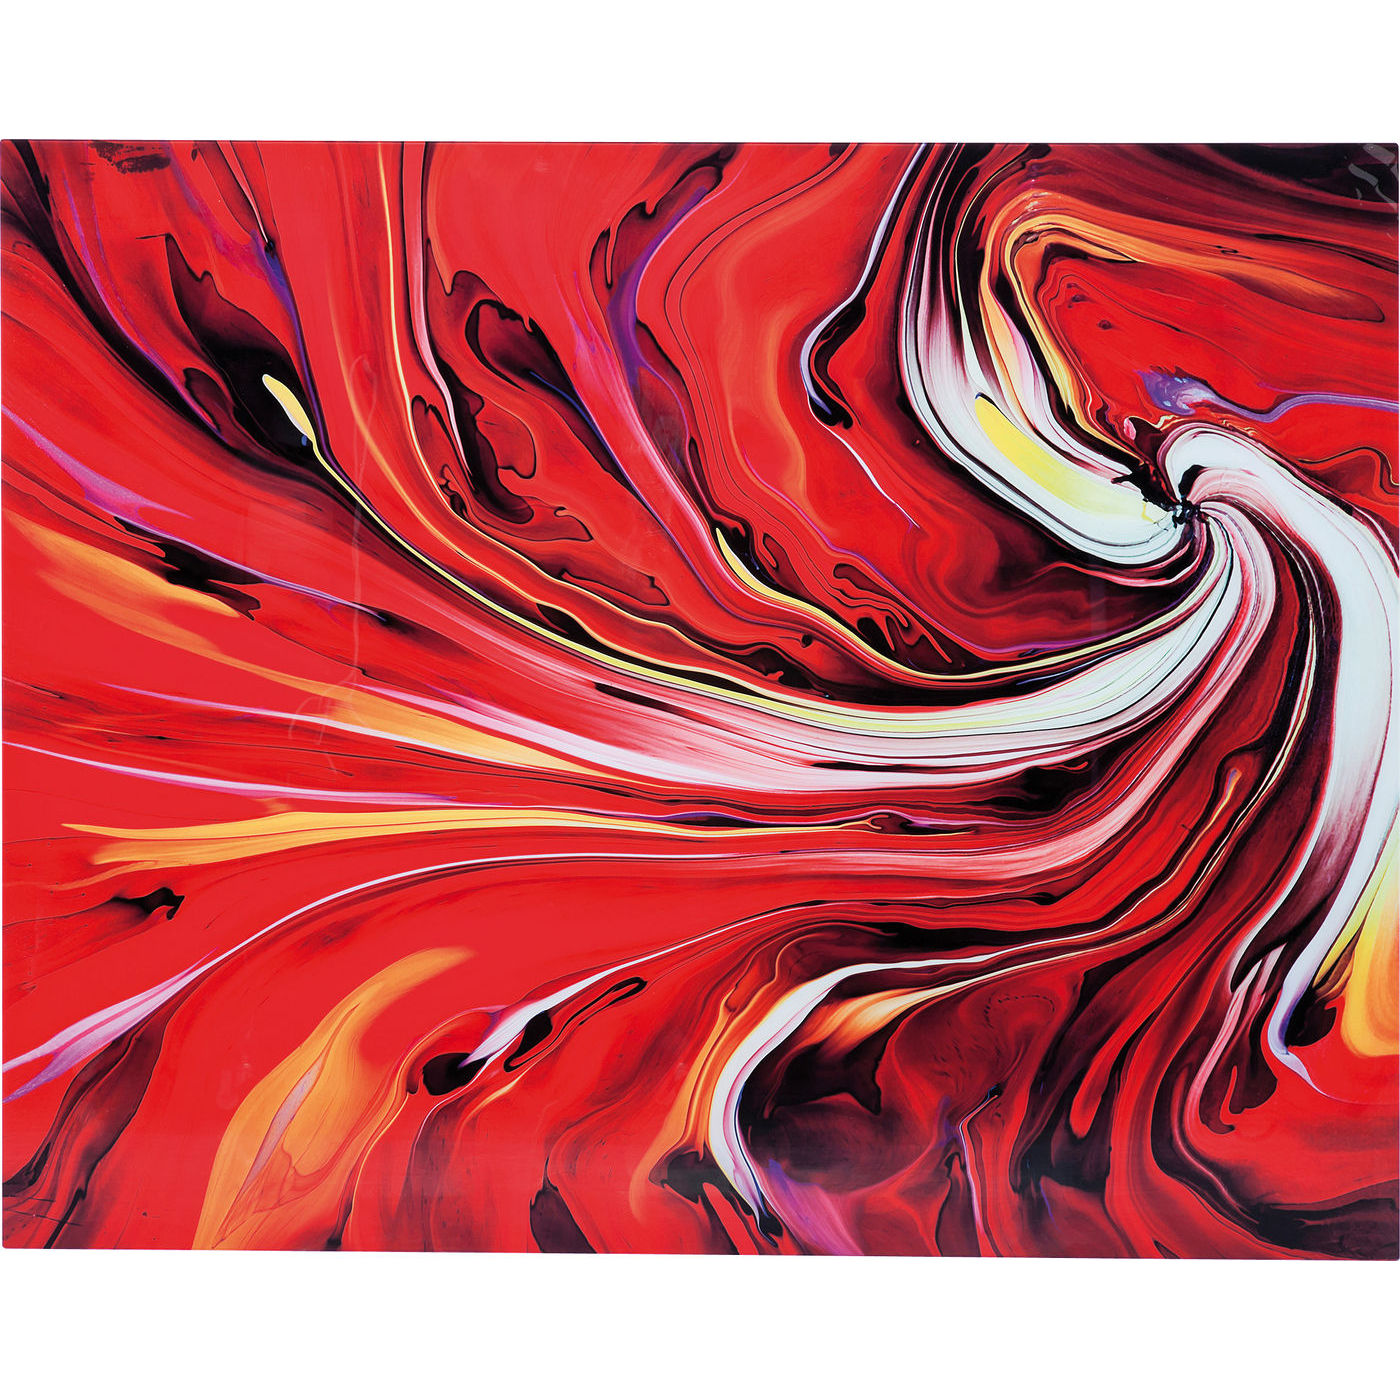 Image of   Kare Design Chaos Fire Plakat, Glas 150x120cm